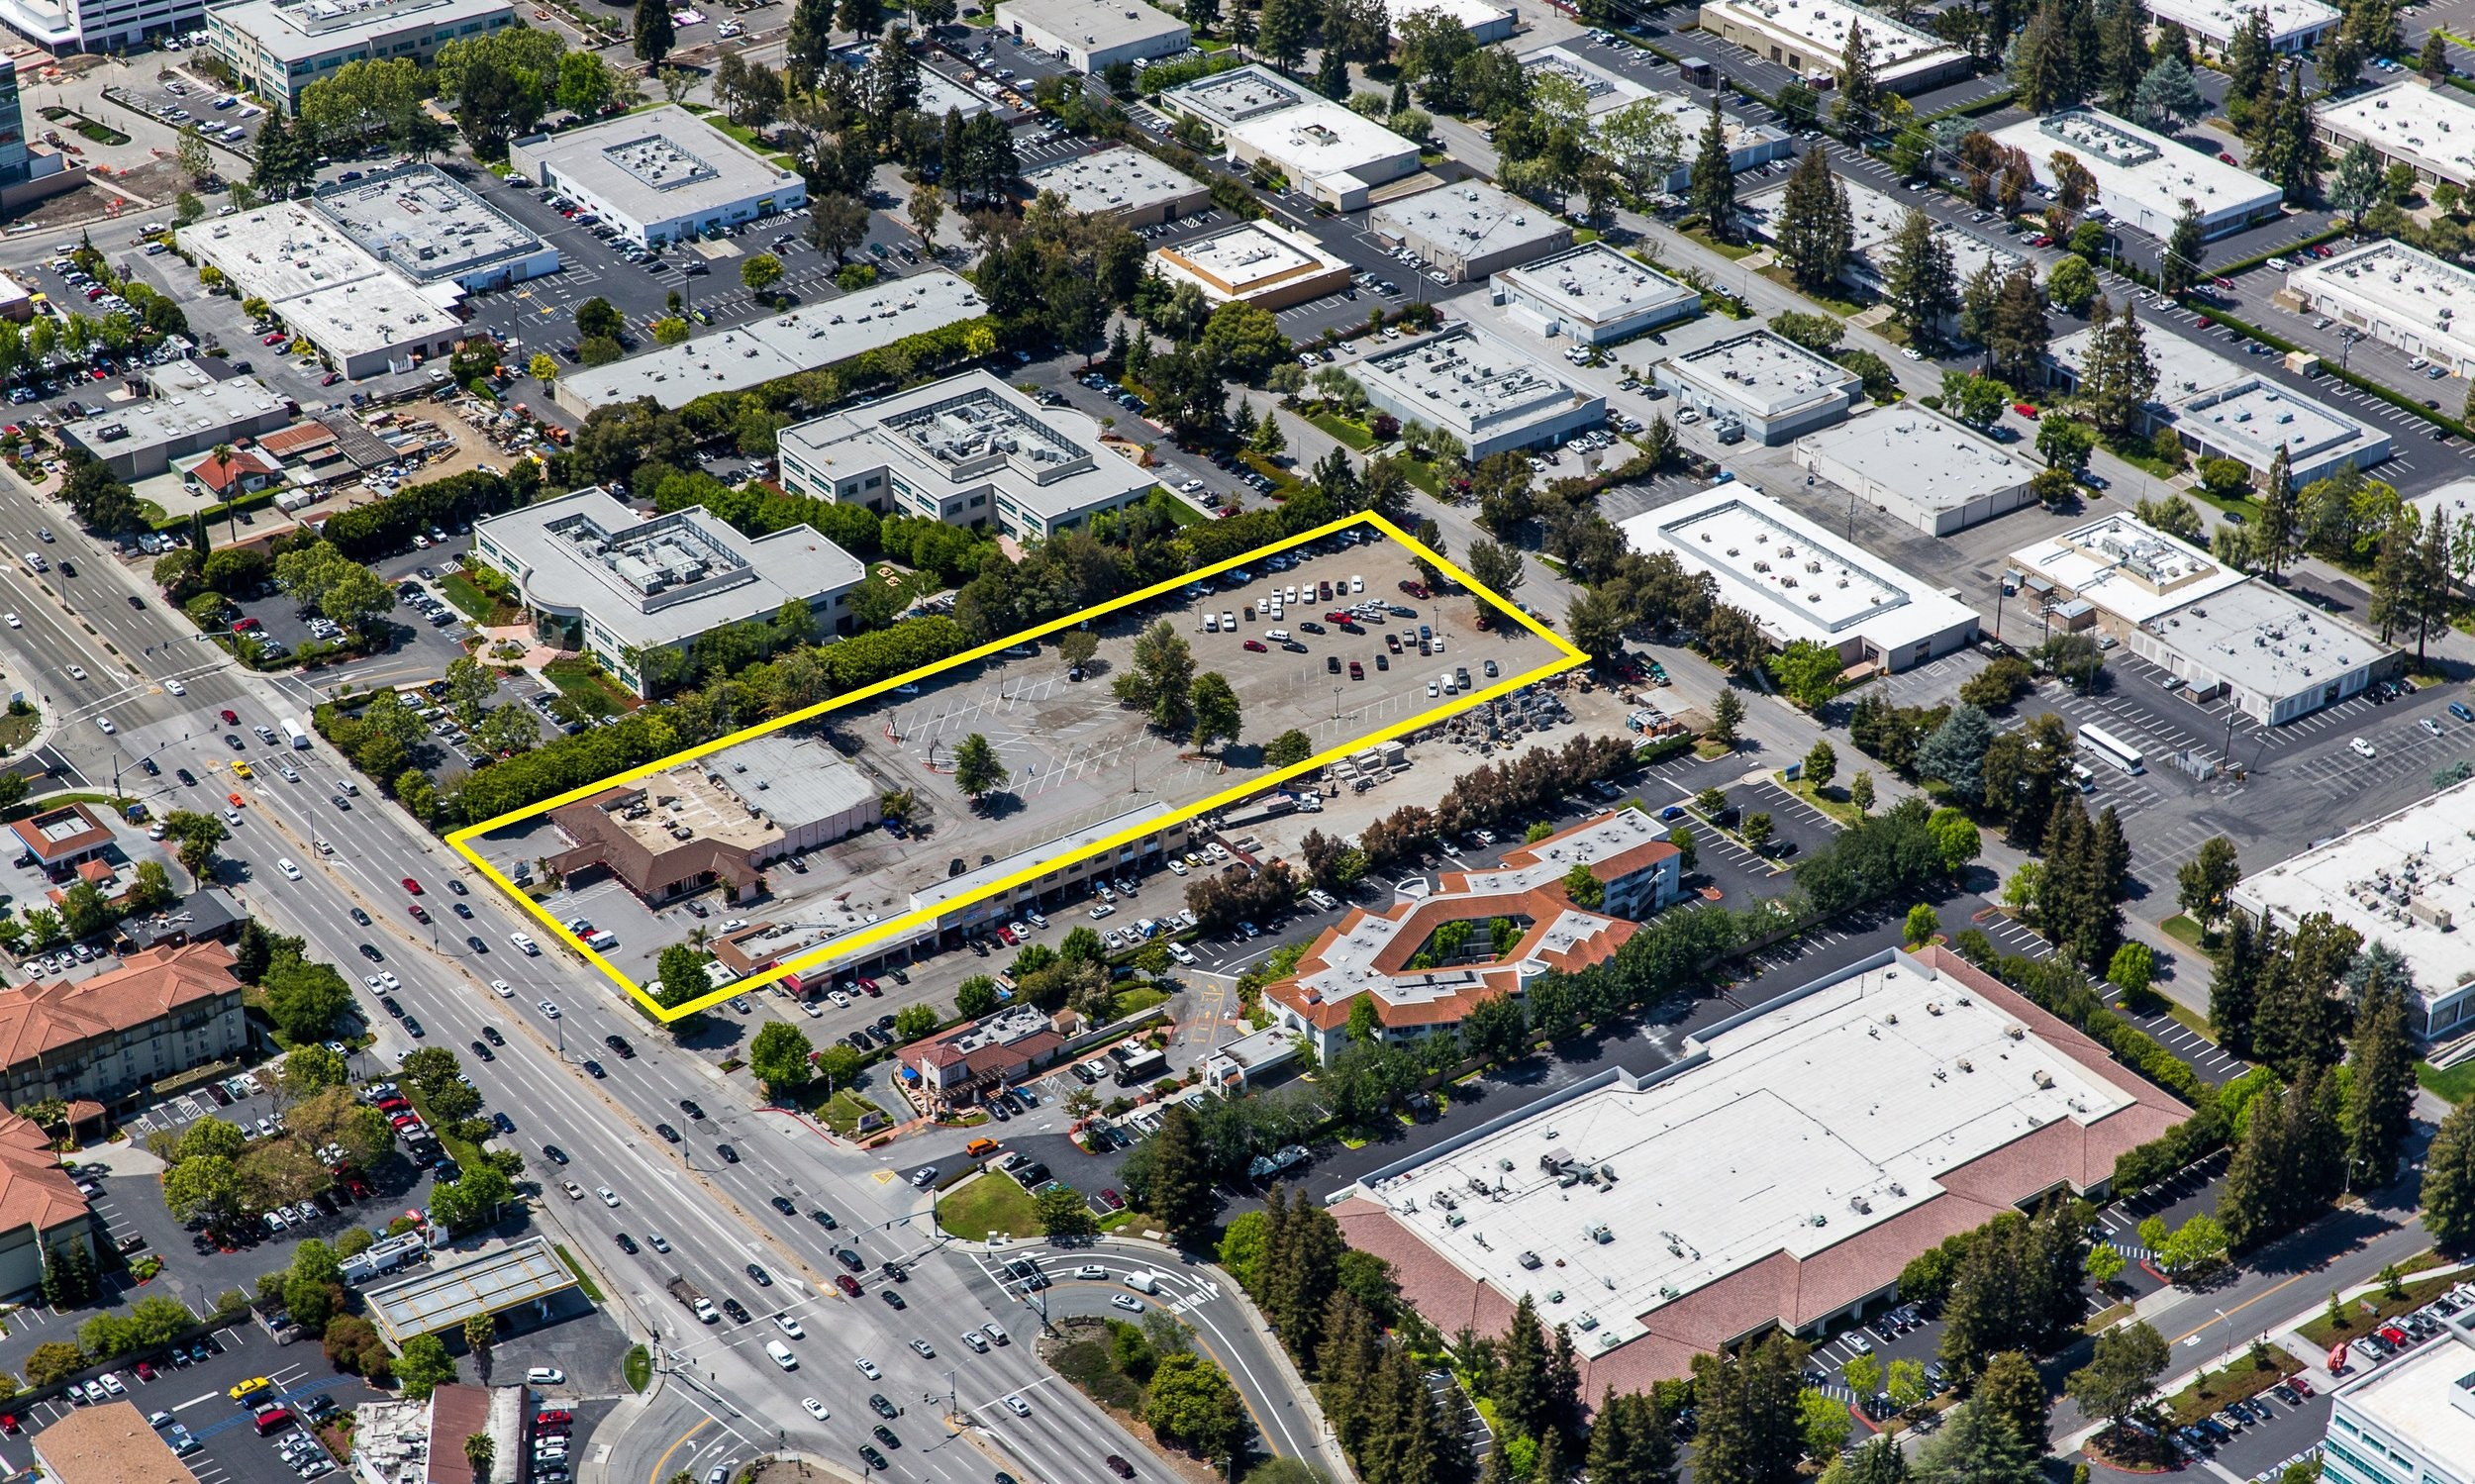 769 North Mathilda Avenue, Sunnyvale, CA 94085 12,748 SF Property on 149,410 SF Parcel $21,000,000